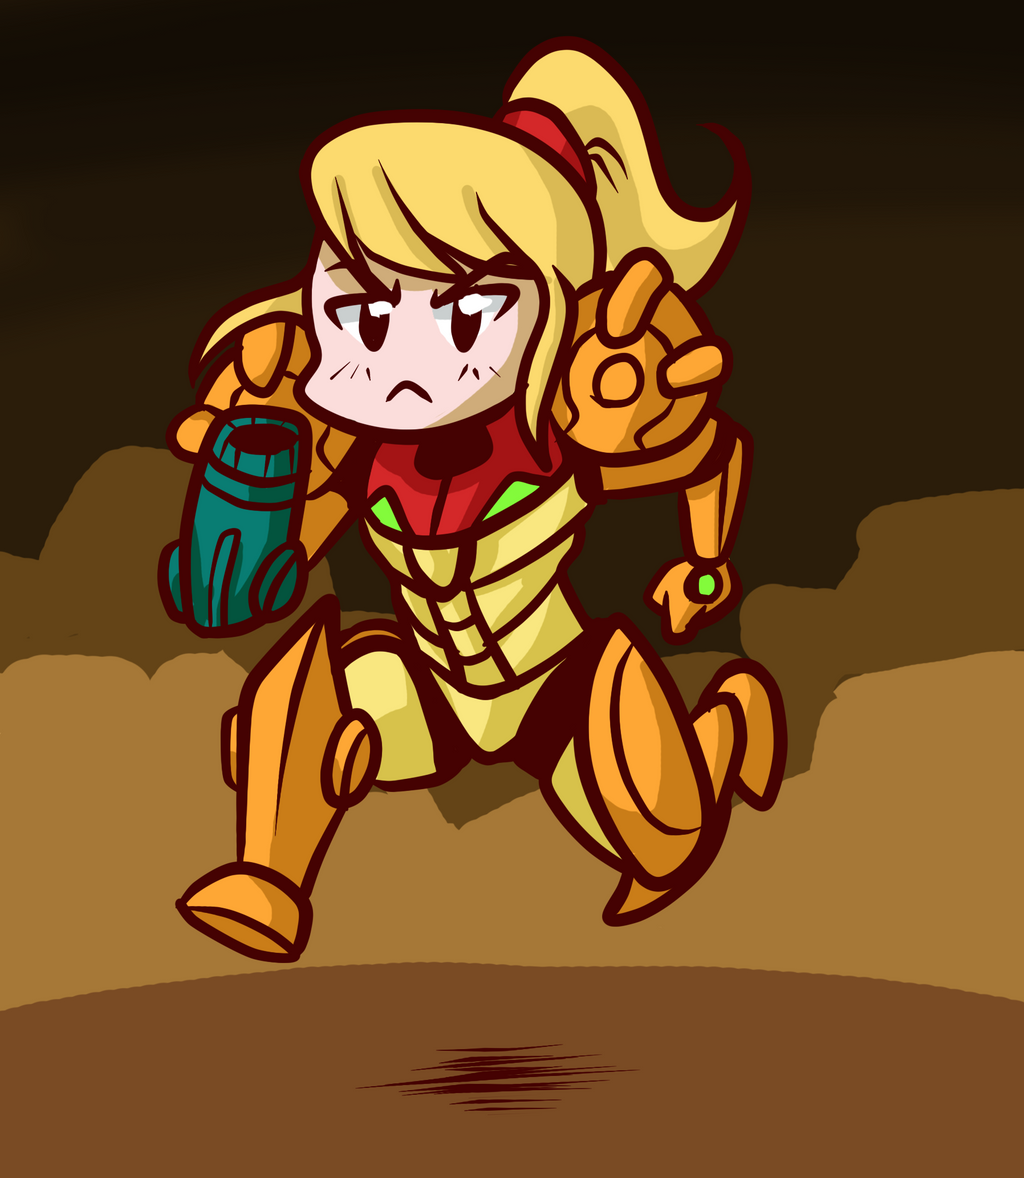 Samus on the Run by Anaugi